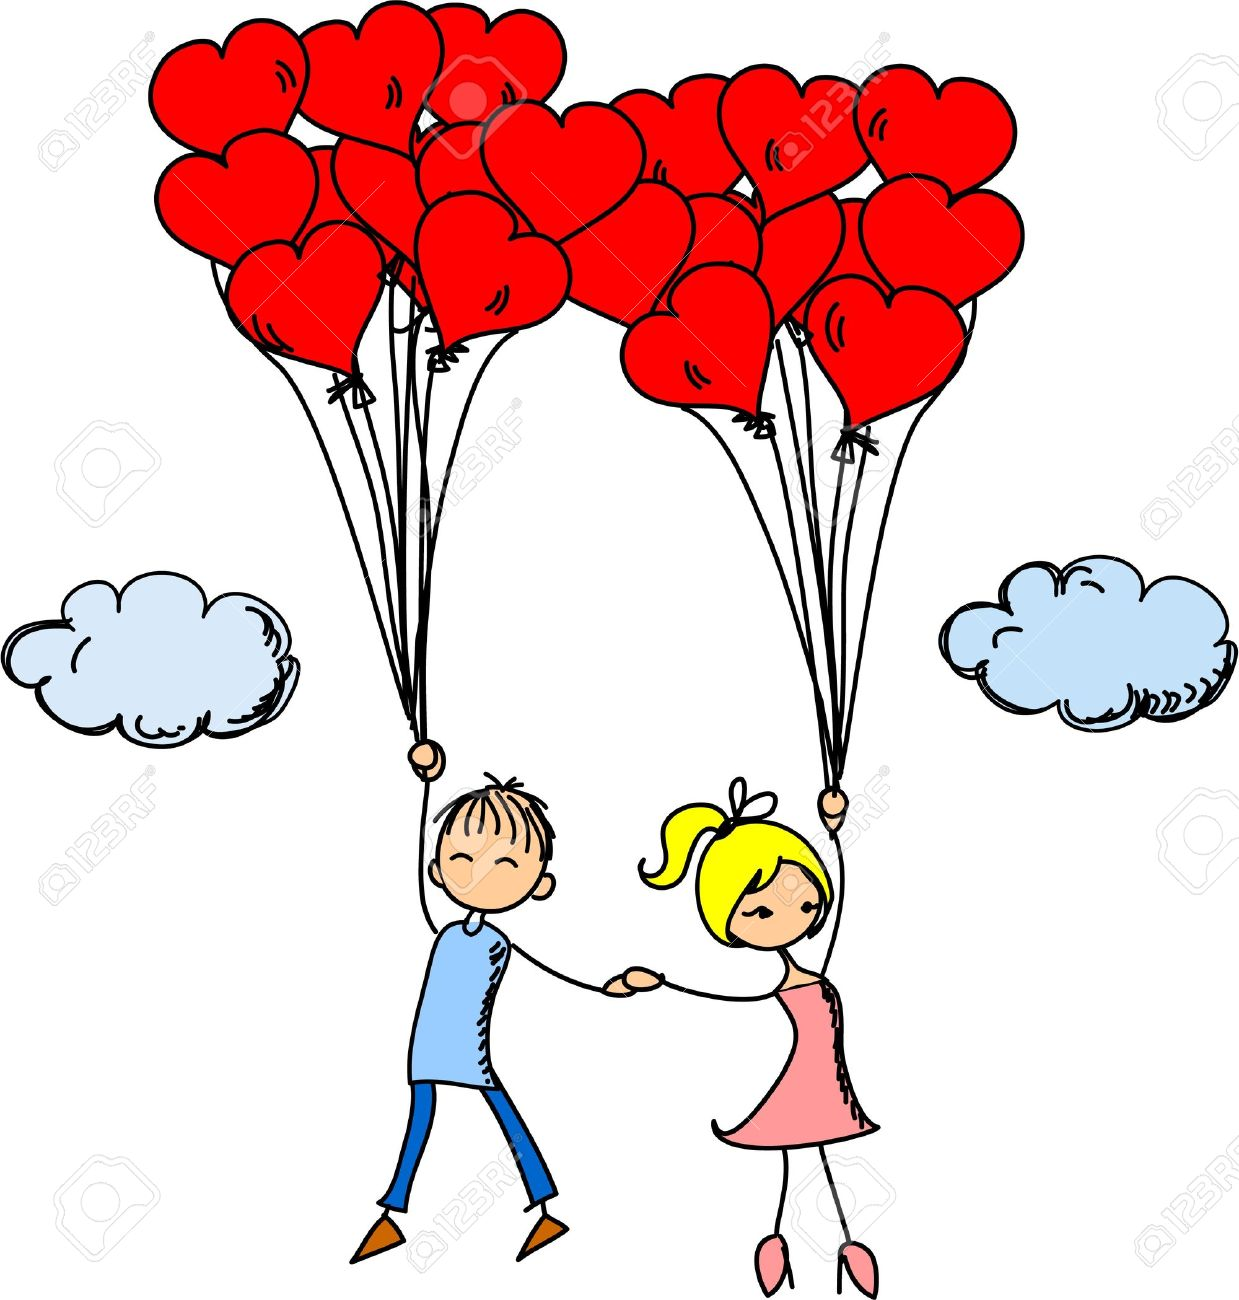 Clipart love fall in love. Free download best on